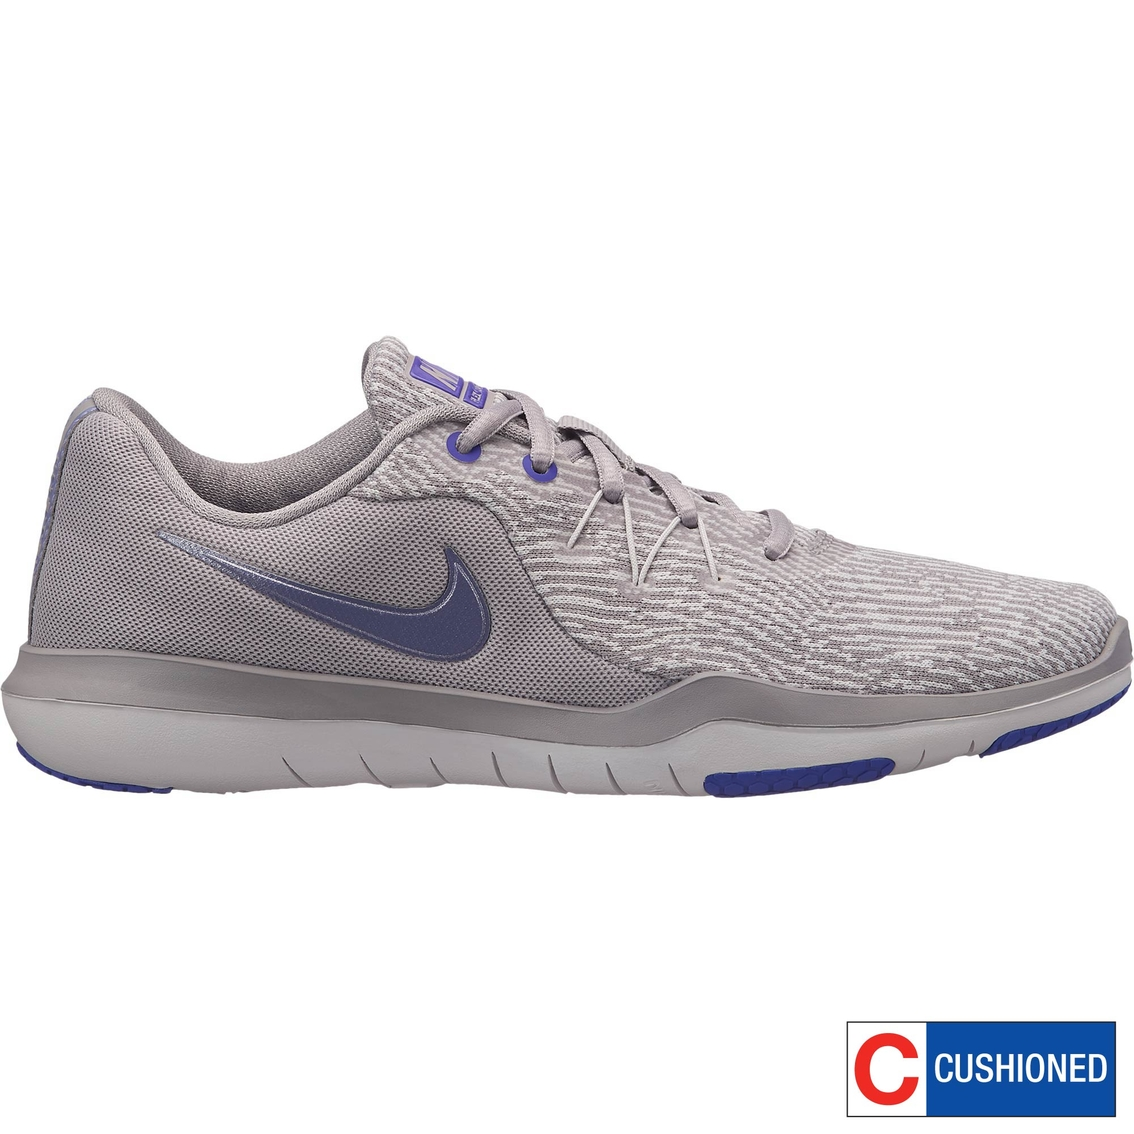 f37d84ae3072 Nike Women s Flex Supreme Tr 6 Cross Training Sneakers